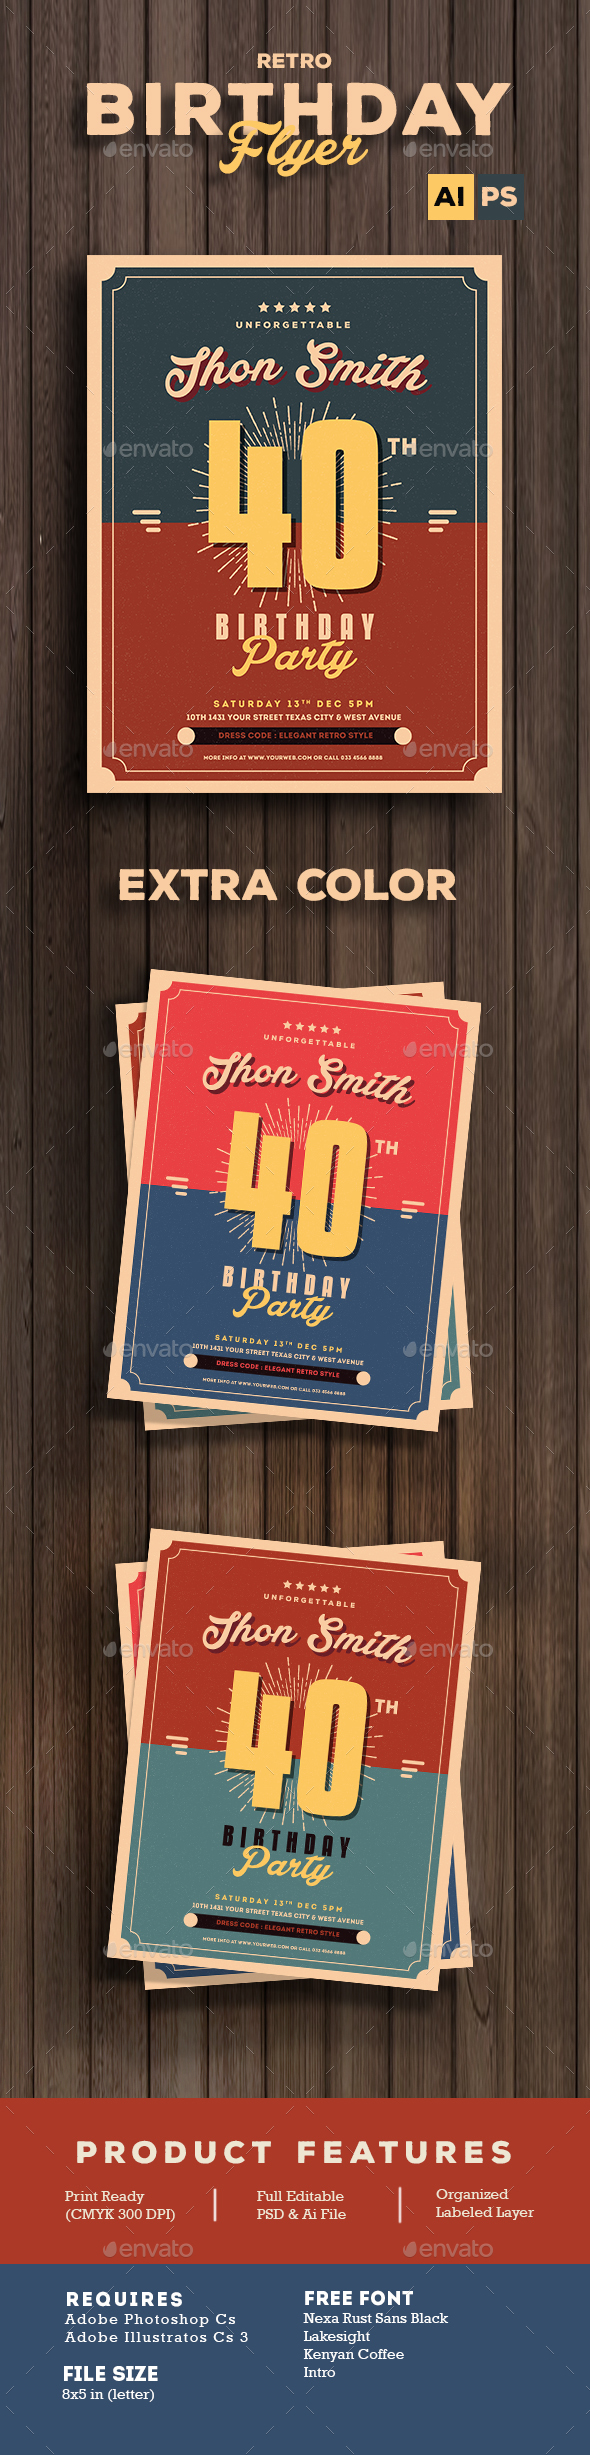 Retro Birthday Party Flyer - Flyers Print Templates